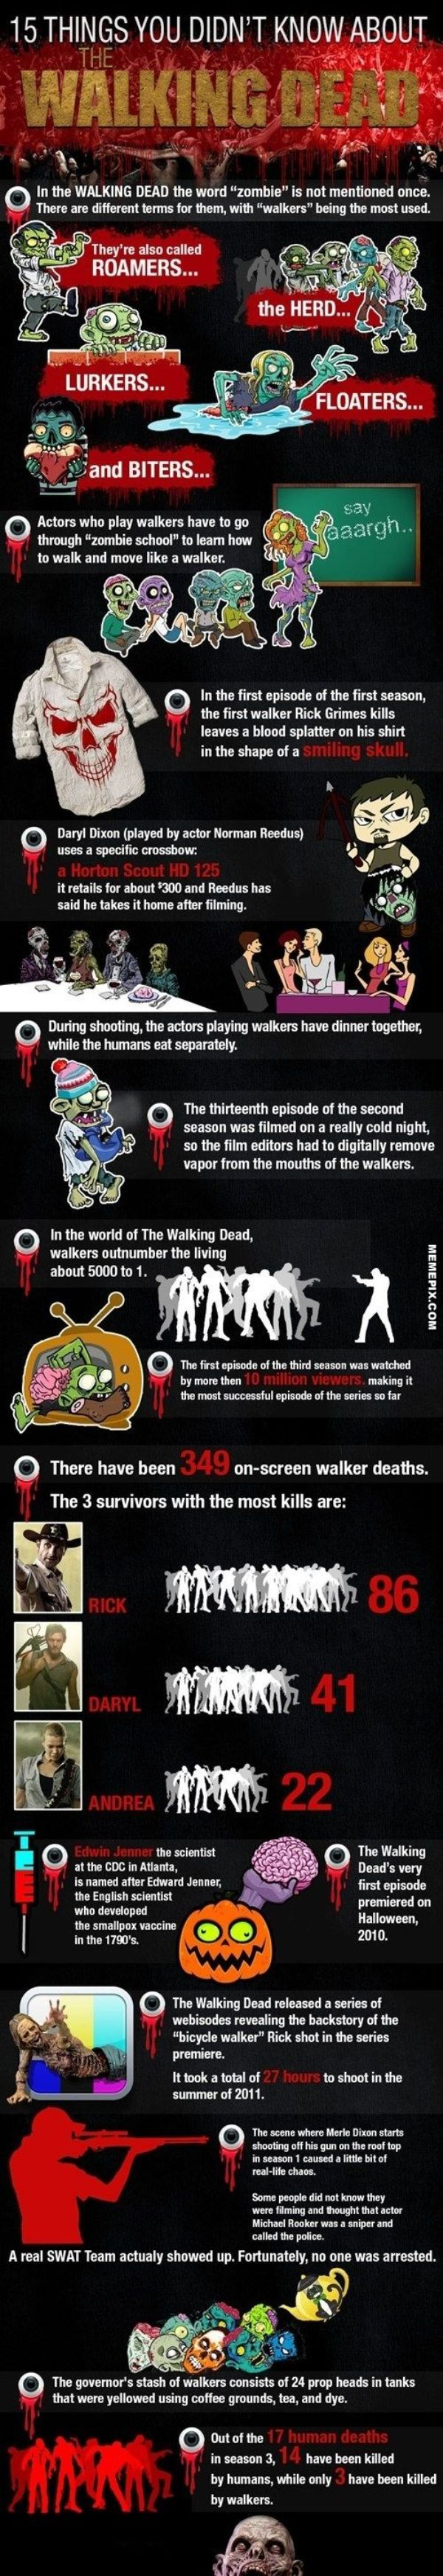 TWD facts